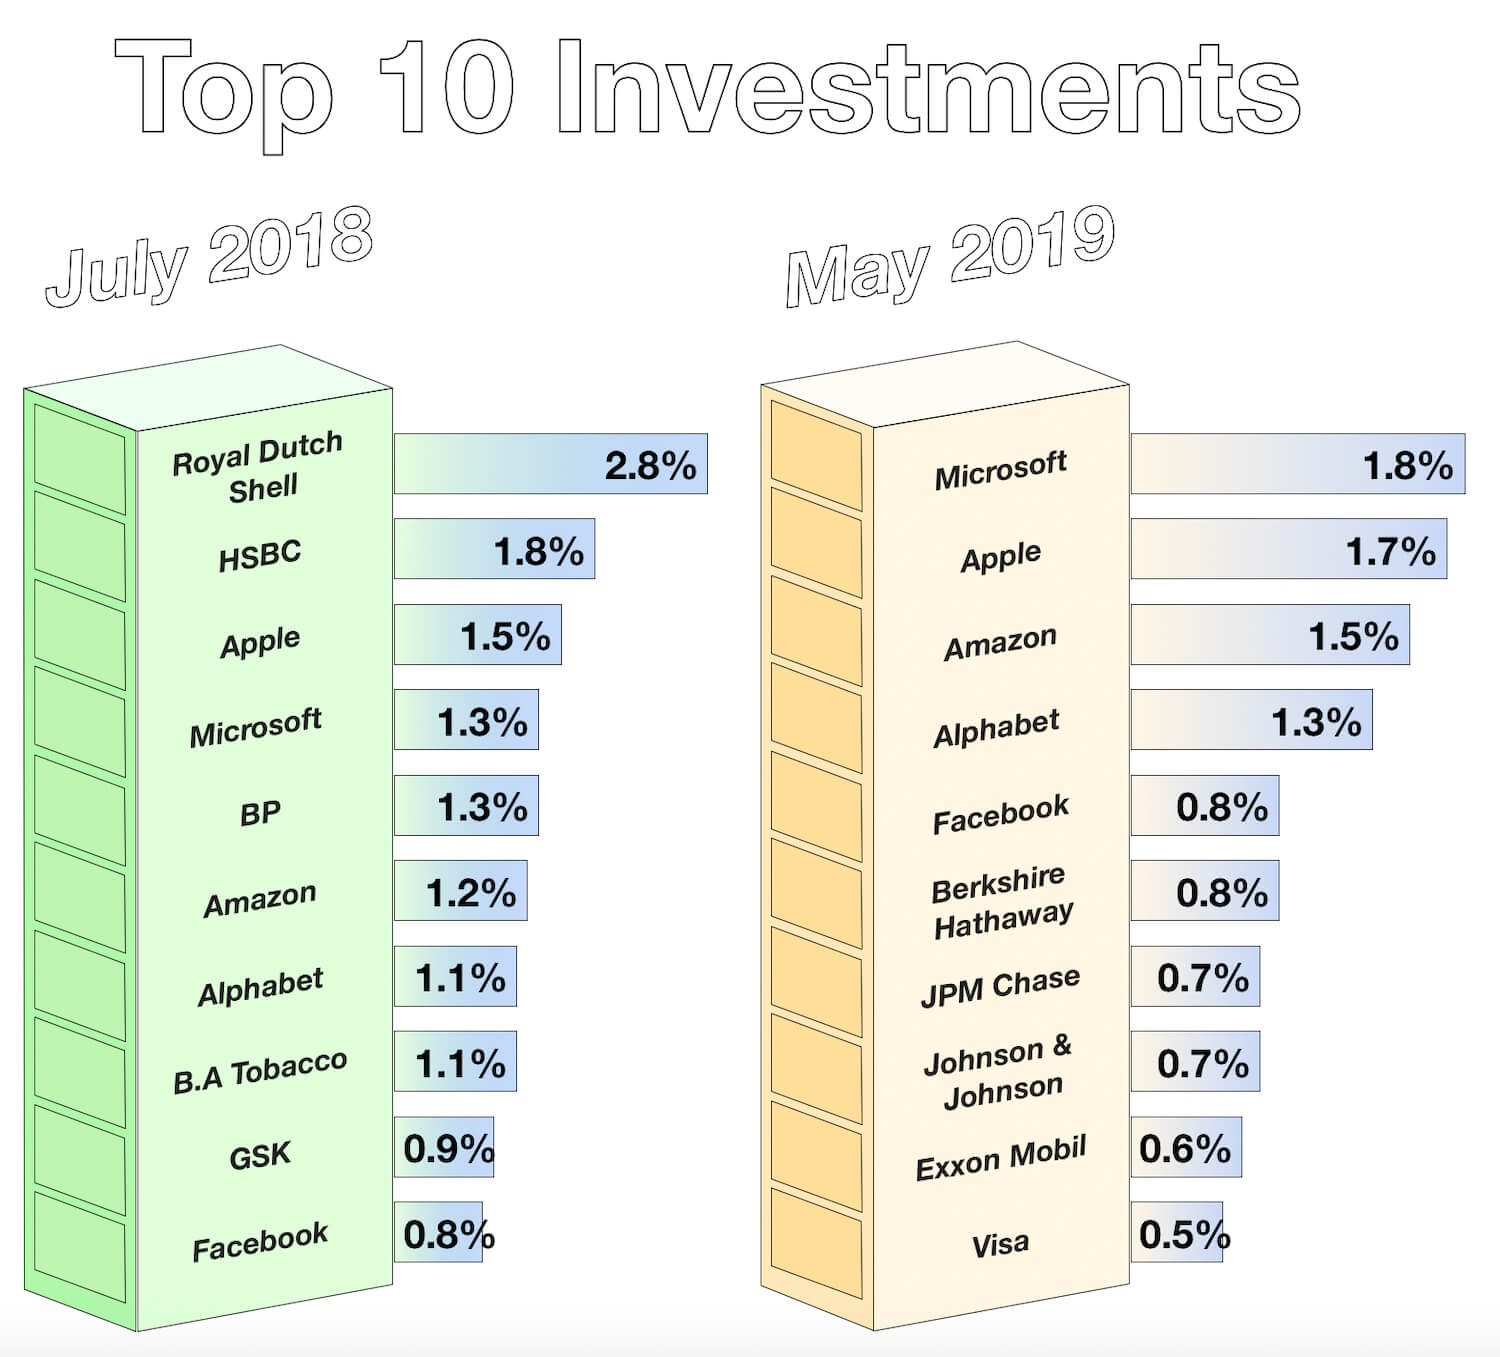 Capital Matters - Investments 2018-19 Year in Review - Top Company Changes